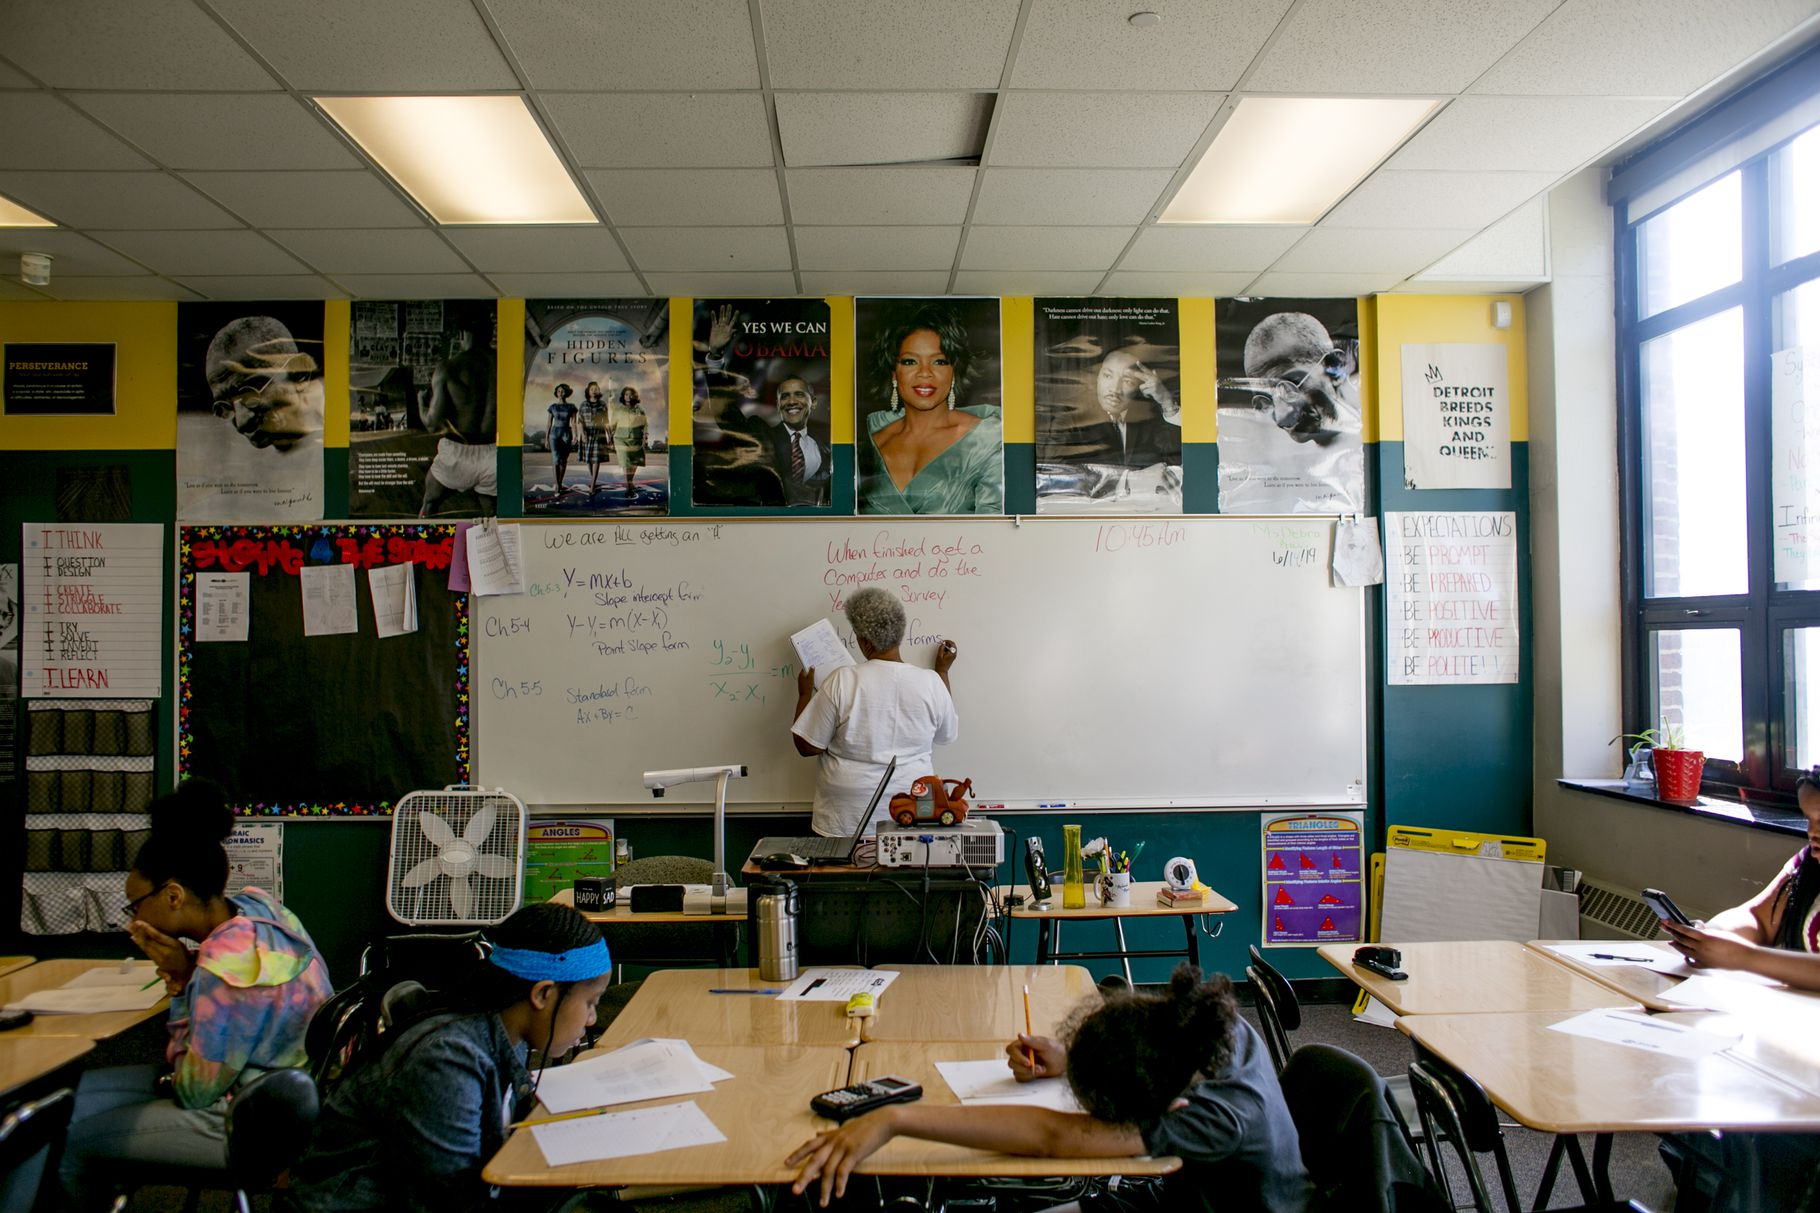 Amid high teacher turnover in Michigan, audit finds failings in teacher support systems